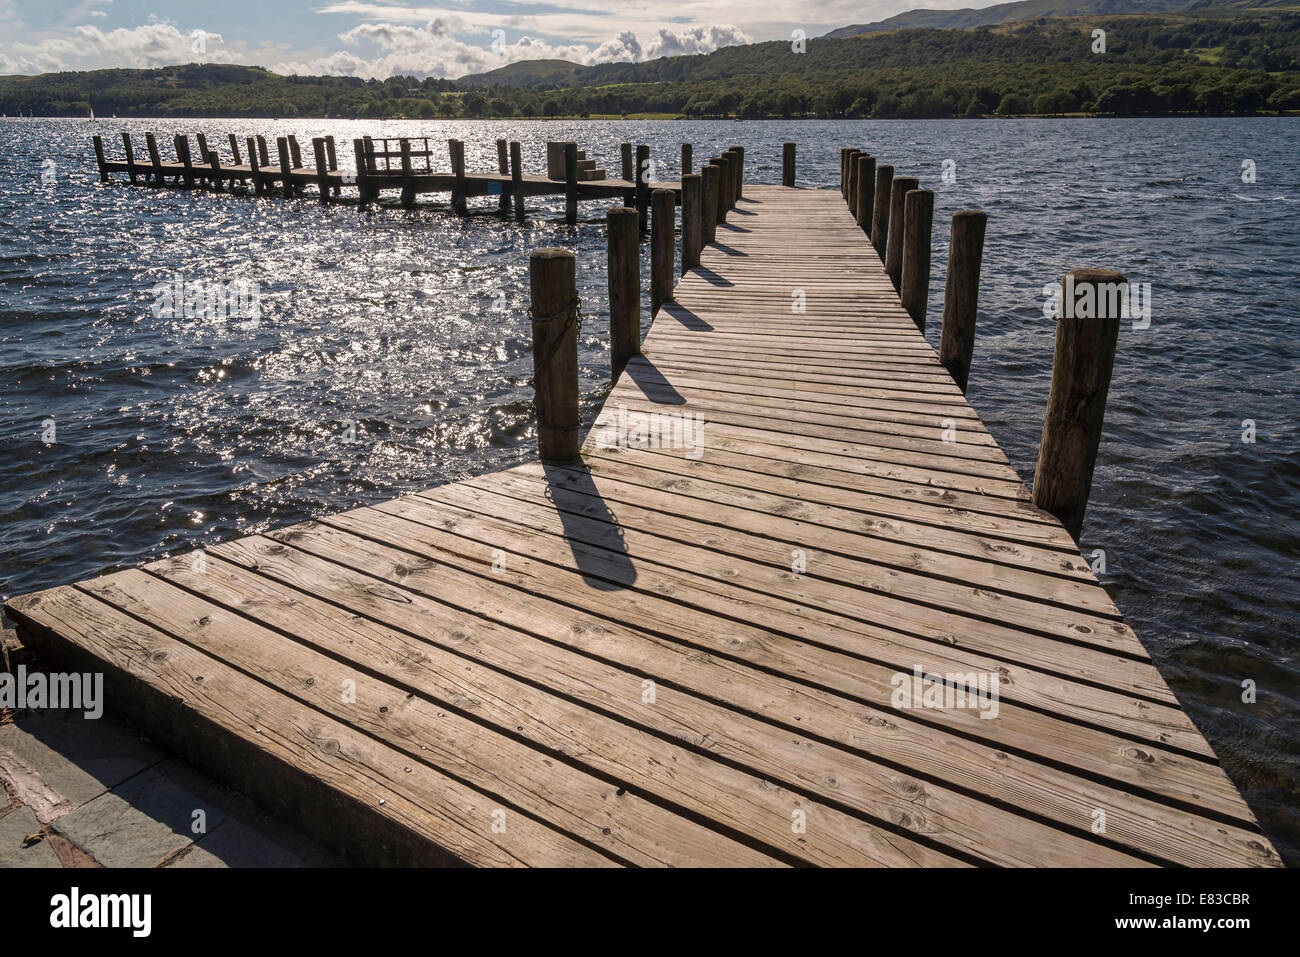 The pier at John Ruskin house on lake Coniston Cumbria North West England. - Stock Image